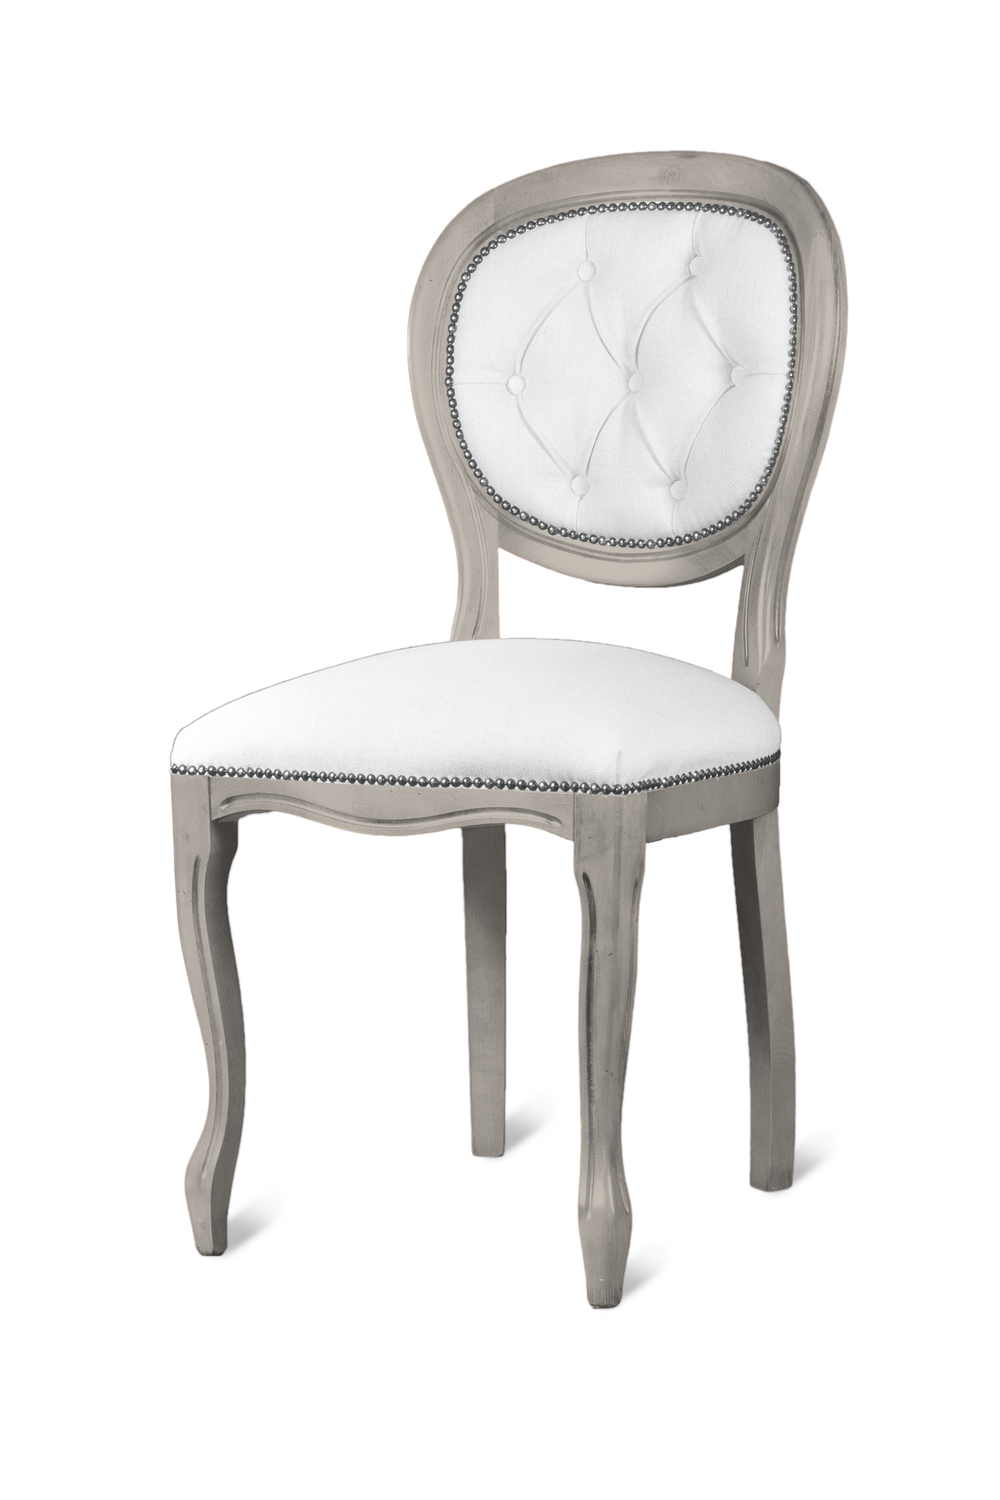 HERITAGE TRADITIONAL LINE UPHOLSTERED CHAIR  w 50 x d 50 h 99 cm  ( seat height 50 cm )   € 433 ( 30% Off, Now €303.10 )  Product Code: TL-1218B  This piece may be ordered in any of the Heritage colours and finishes.